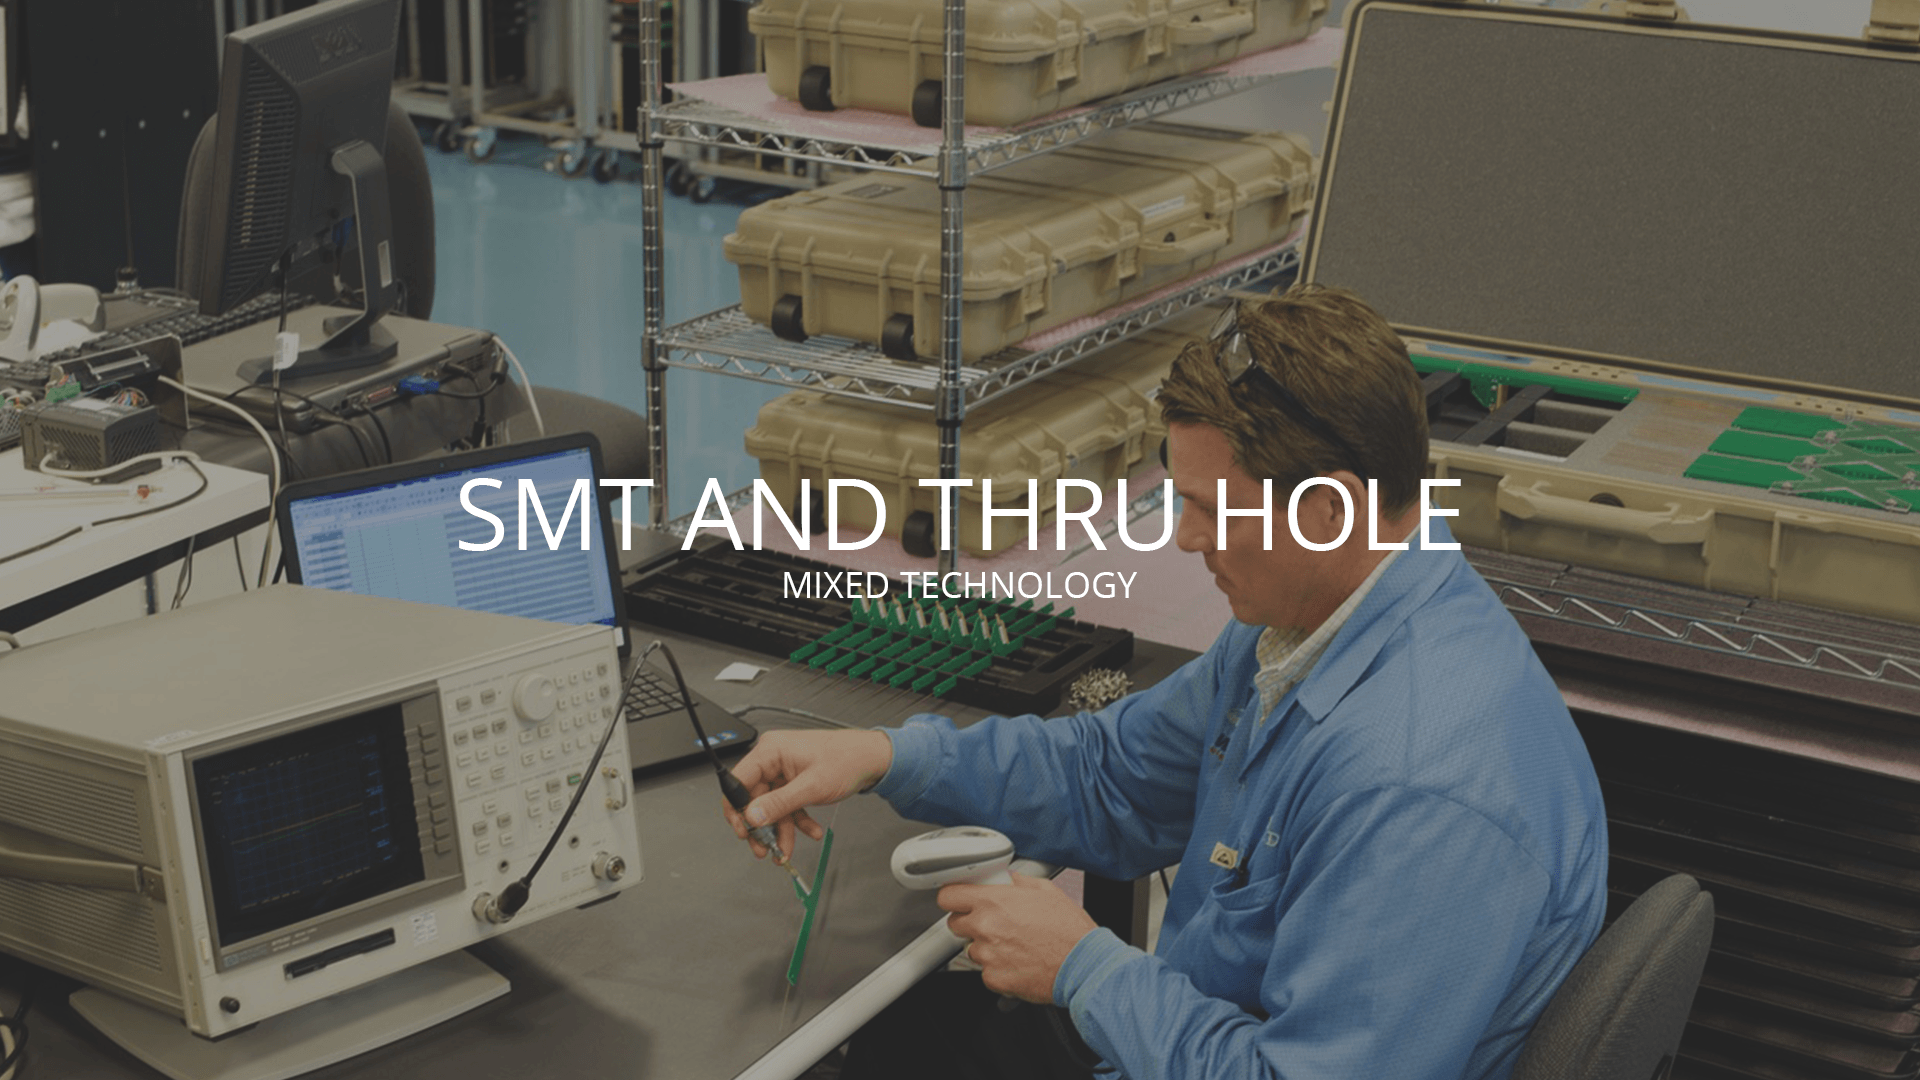 SMT, Thru Hole, and Mixed Technology